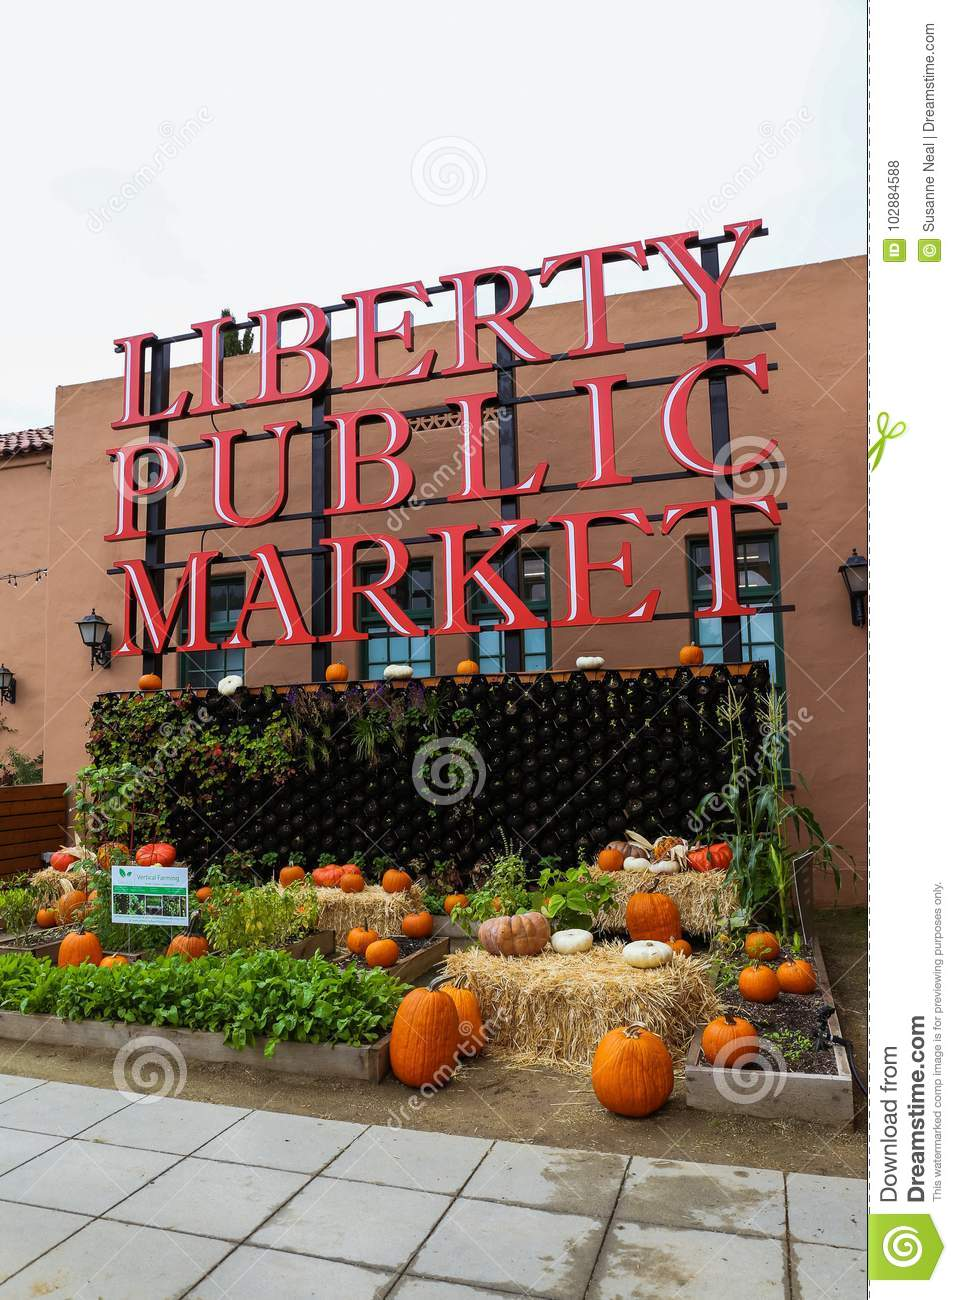 Liberty Public Market, a popular shopping area in Point Loma, California